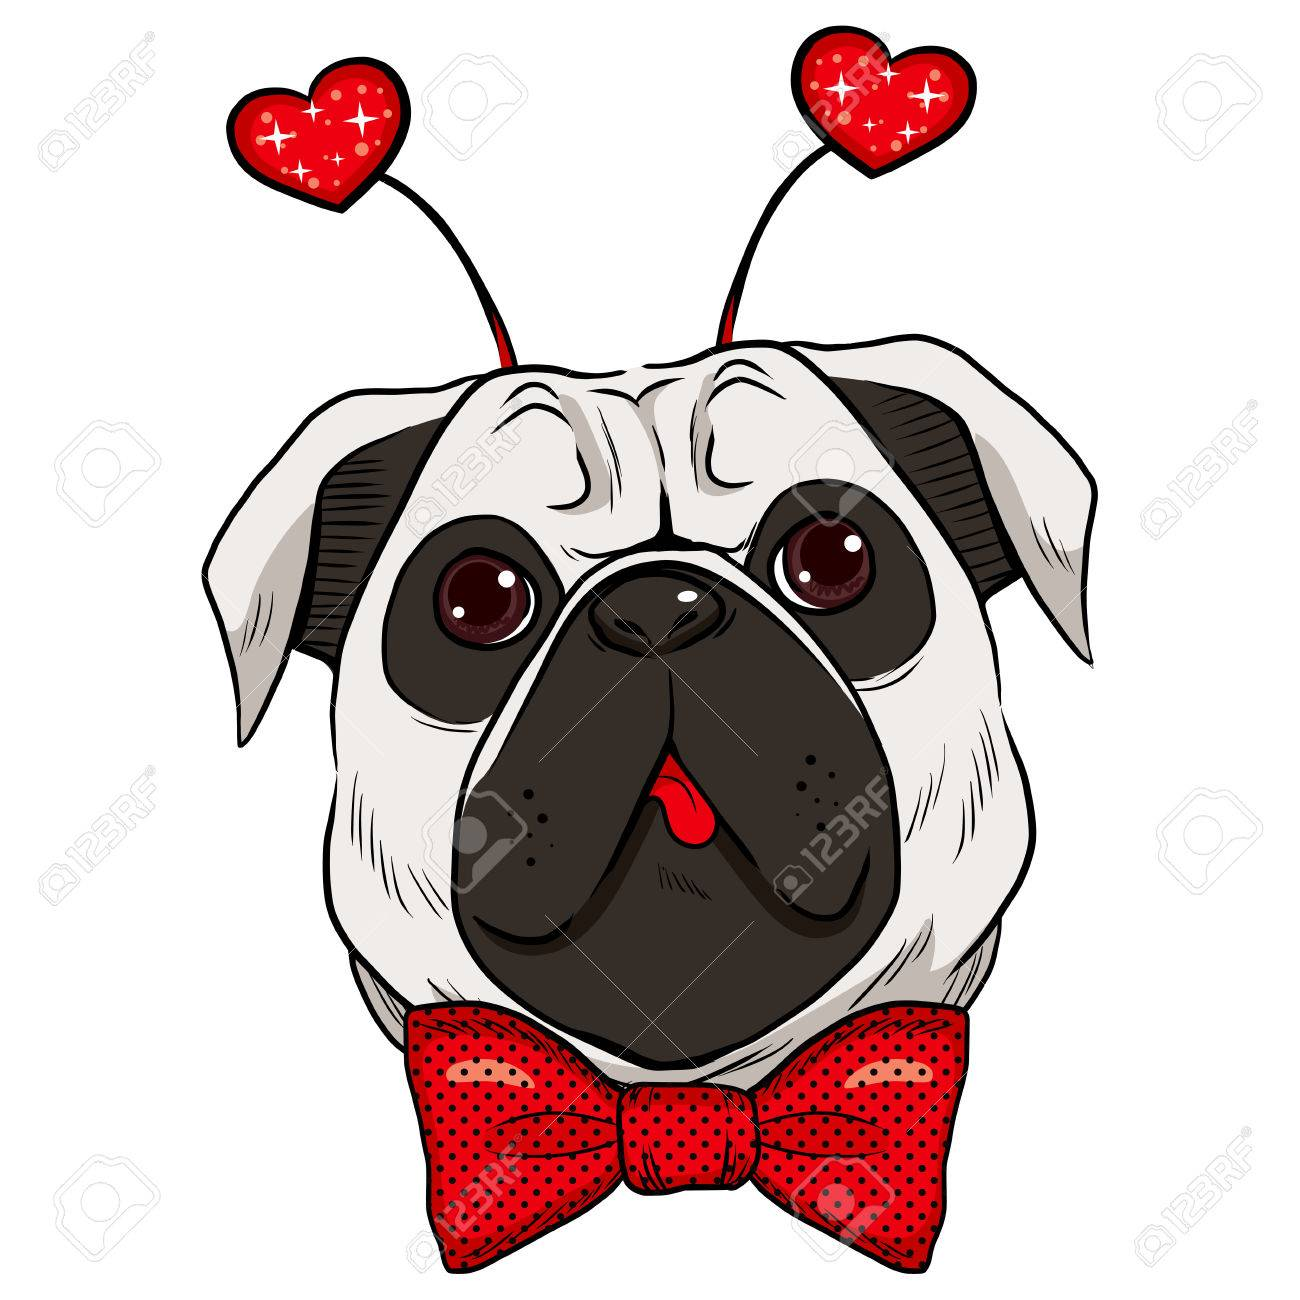 Best Pug Bow Adorable Dog - 35595892-cute-st-valentine-pug-dog-showing-tongue-with-red-bowtie-and-fashionable-red-sparkling-heart-accesso  Snapshot_59730  .jpg